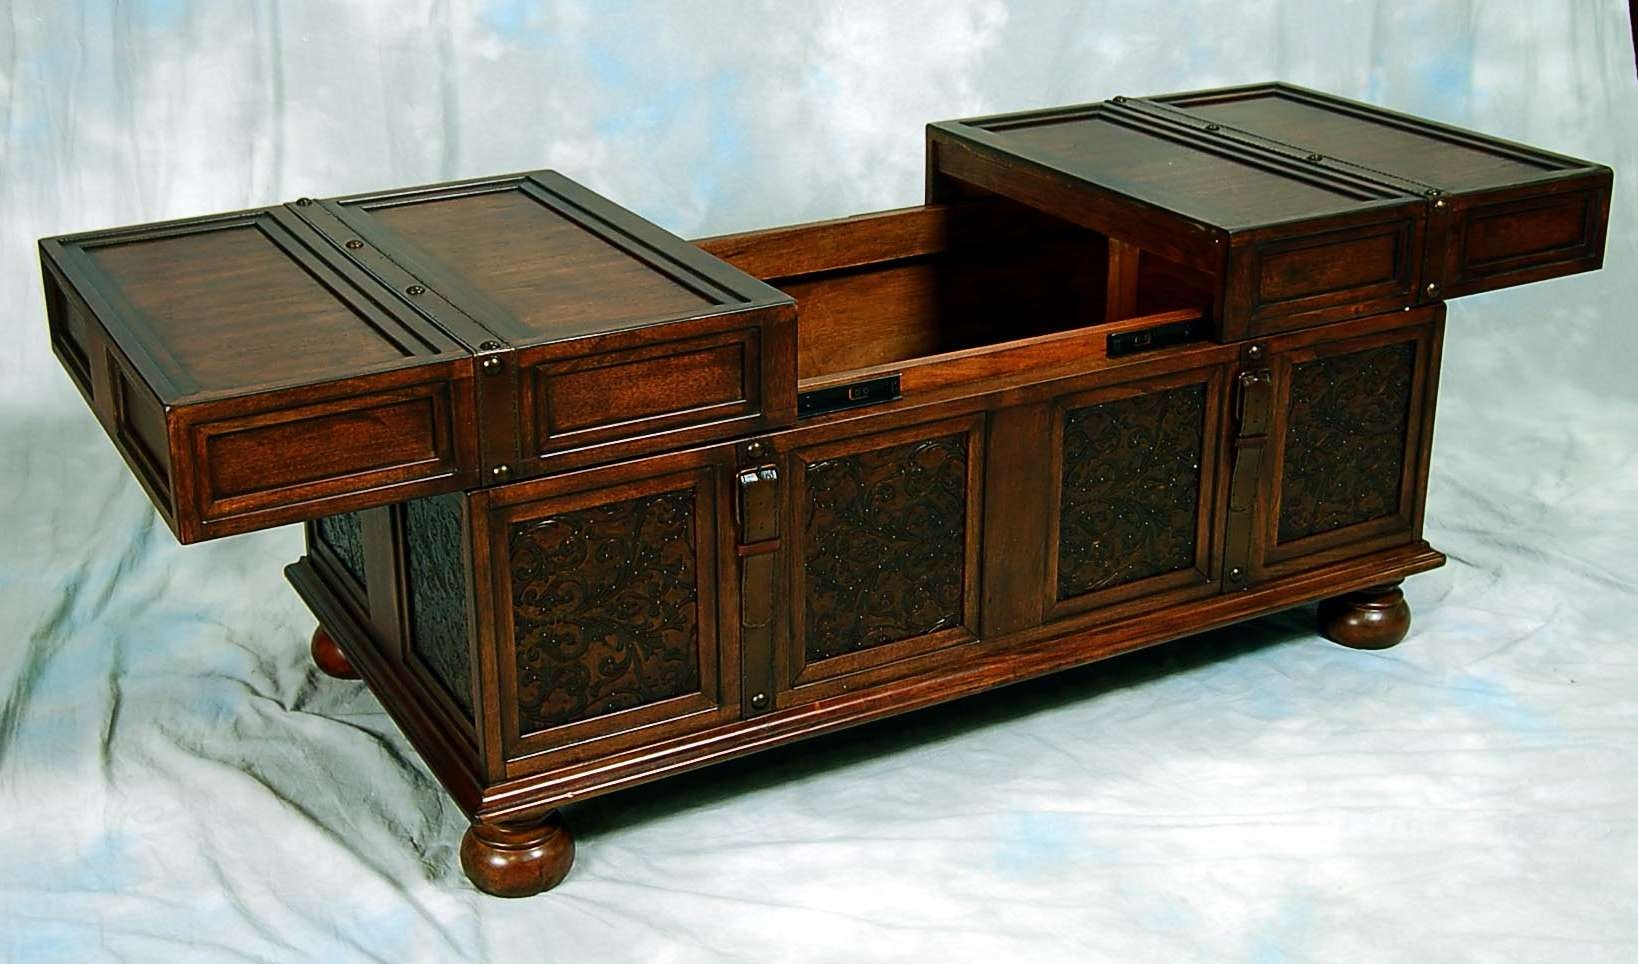 Coffee Tables : Storage Trunk Side Table Antique Wooden Coffee For Well Known Dark Wood Chest Coffee Tables (View 17 of 20)